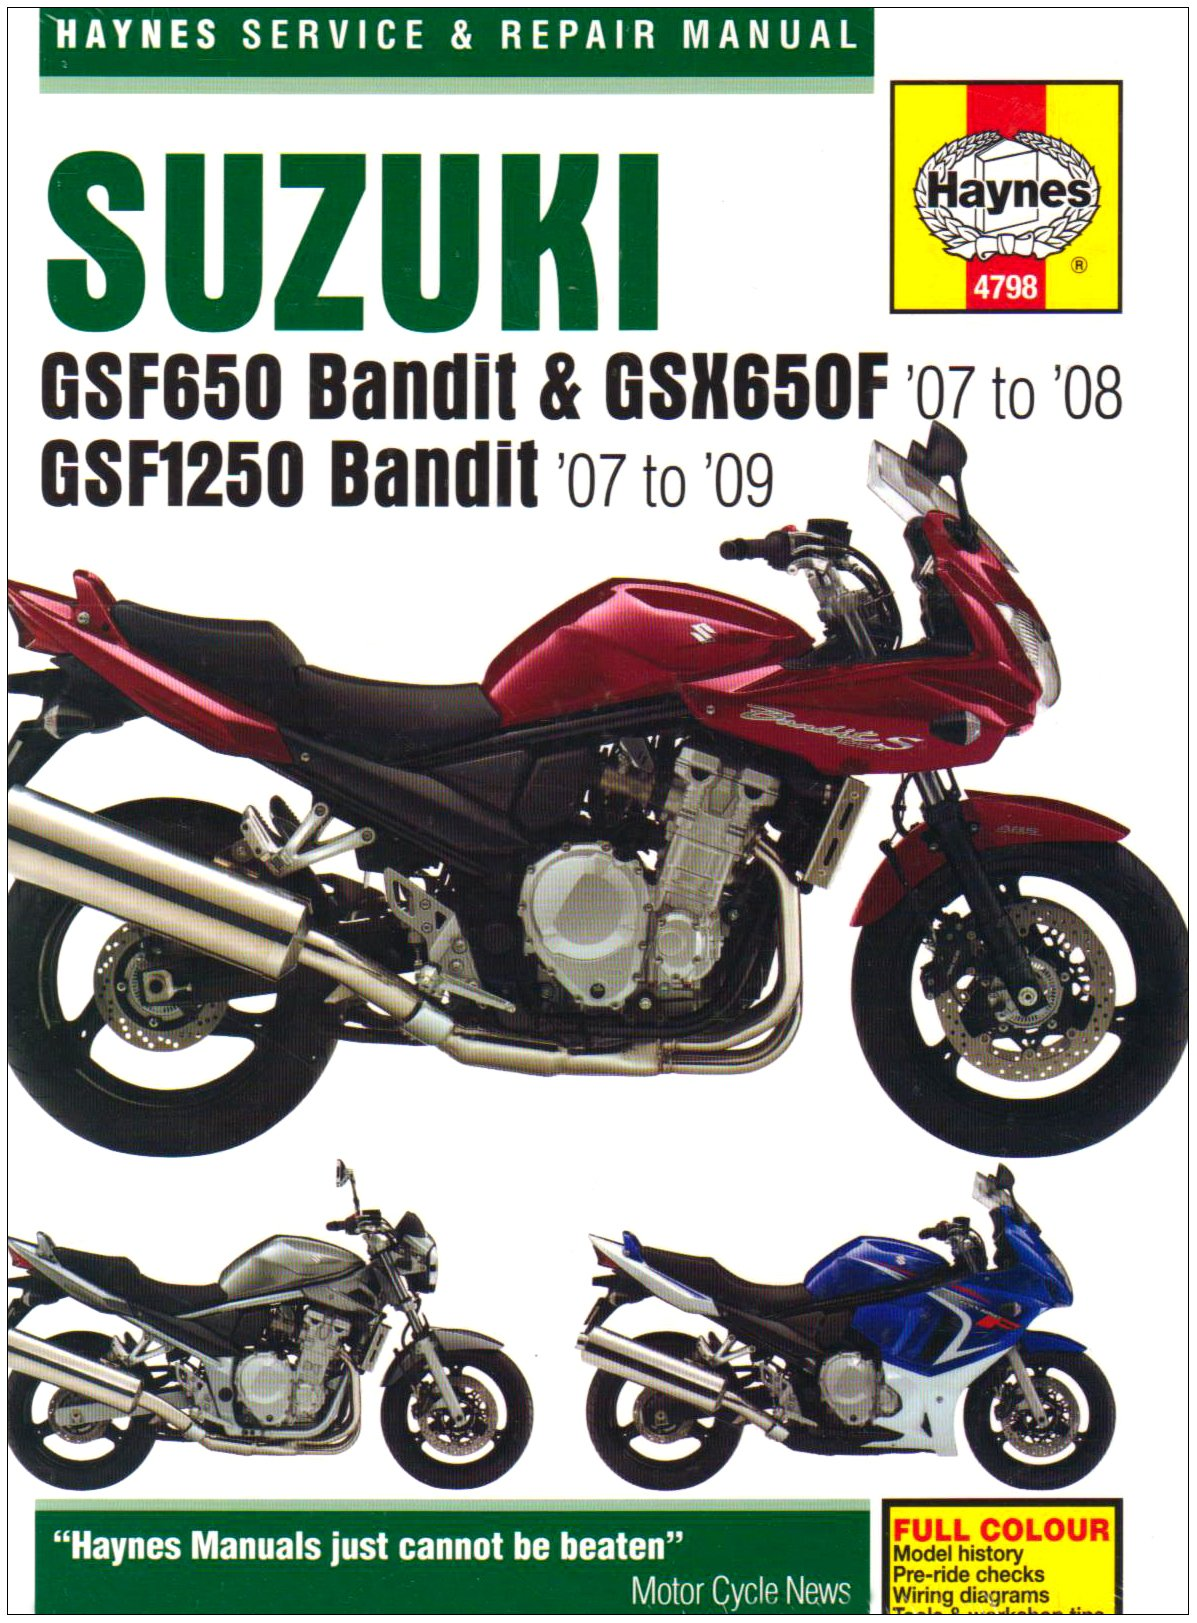 Suzuki Gsf650 1250 Bandit And Gsx650fservice Repair Manual 2007 2003 Gsxr 600 Wiring Diagram To 2009 Haynes Service Manuals Phil Mather 9781844257980